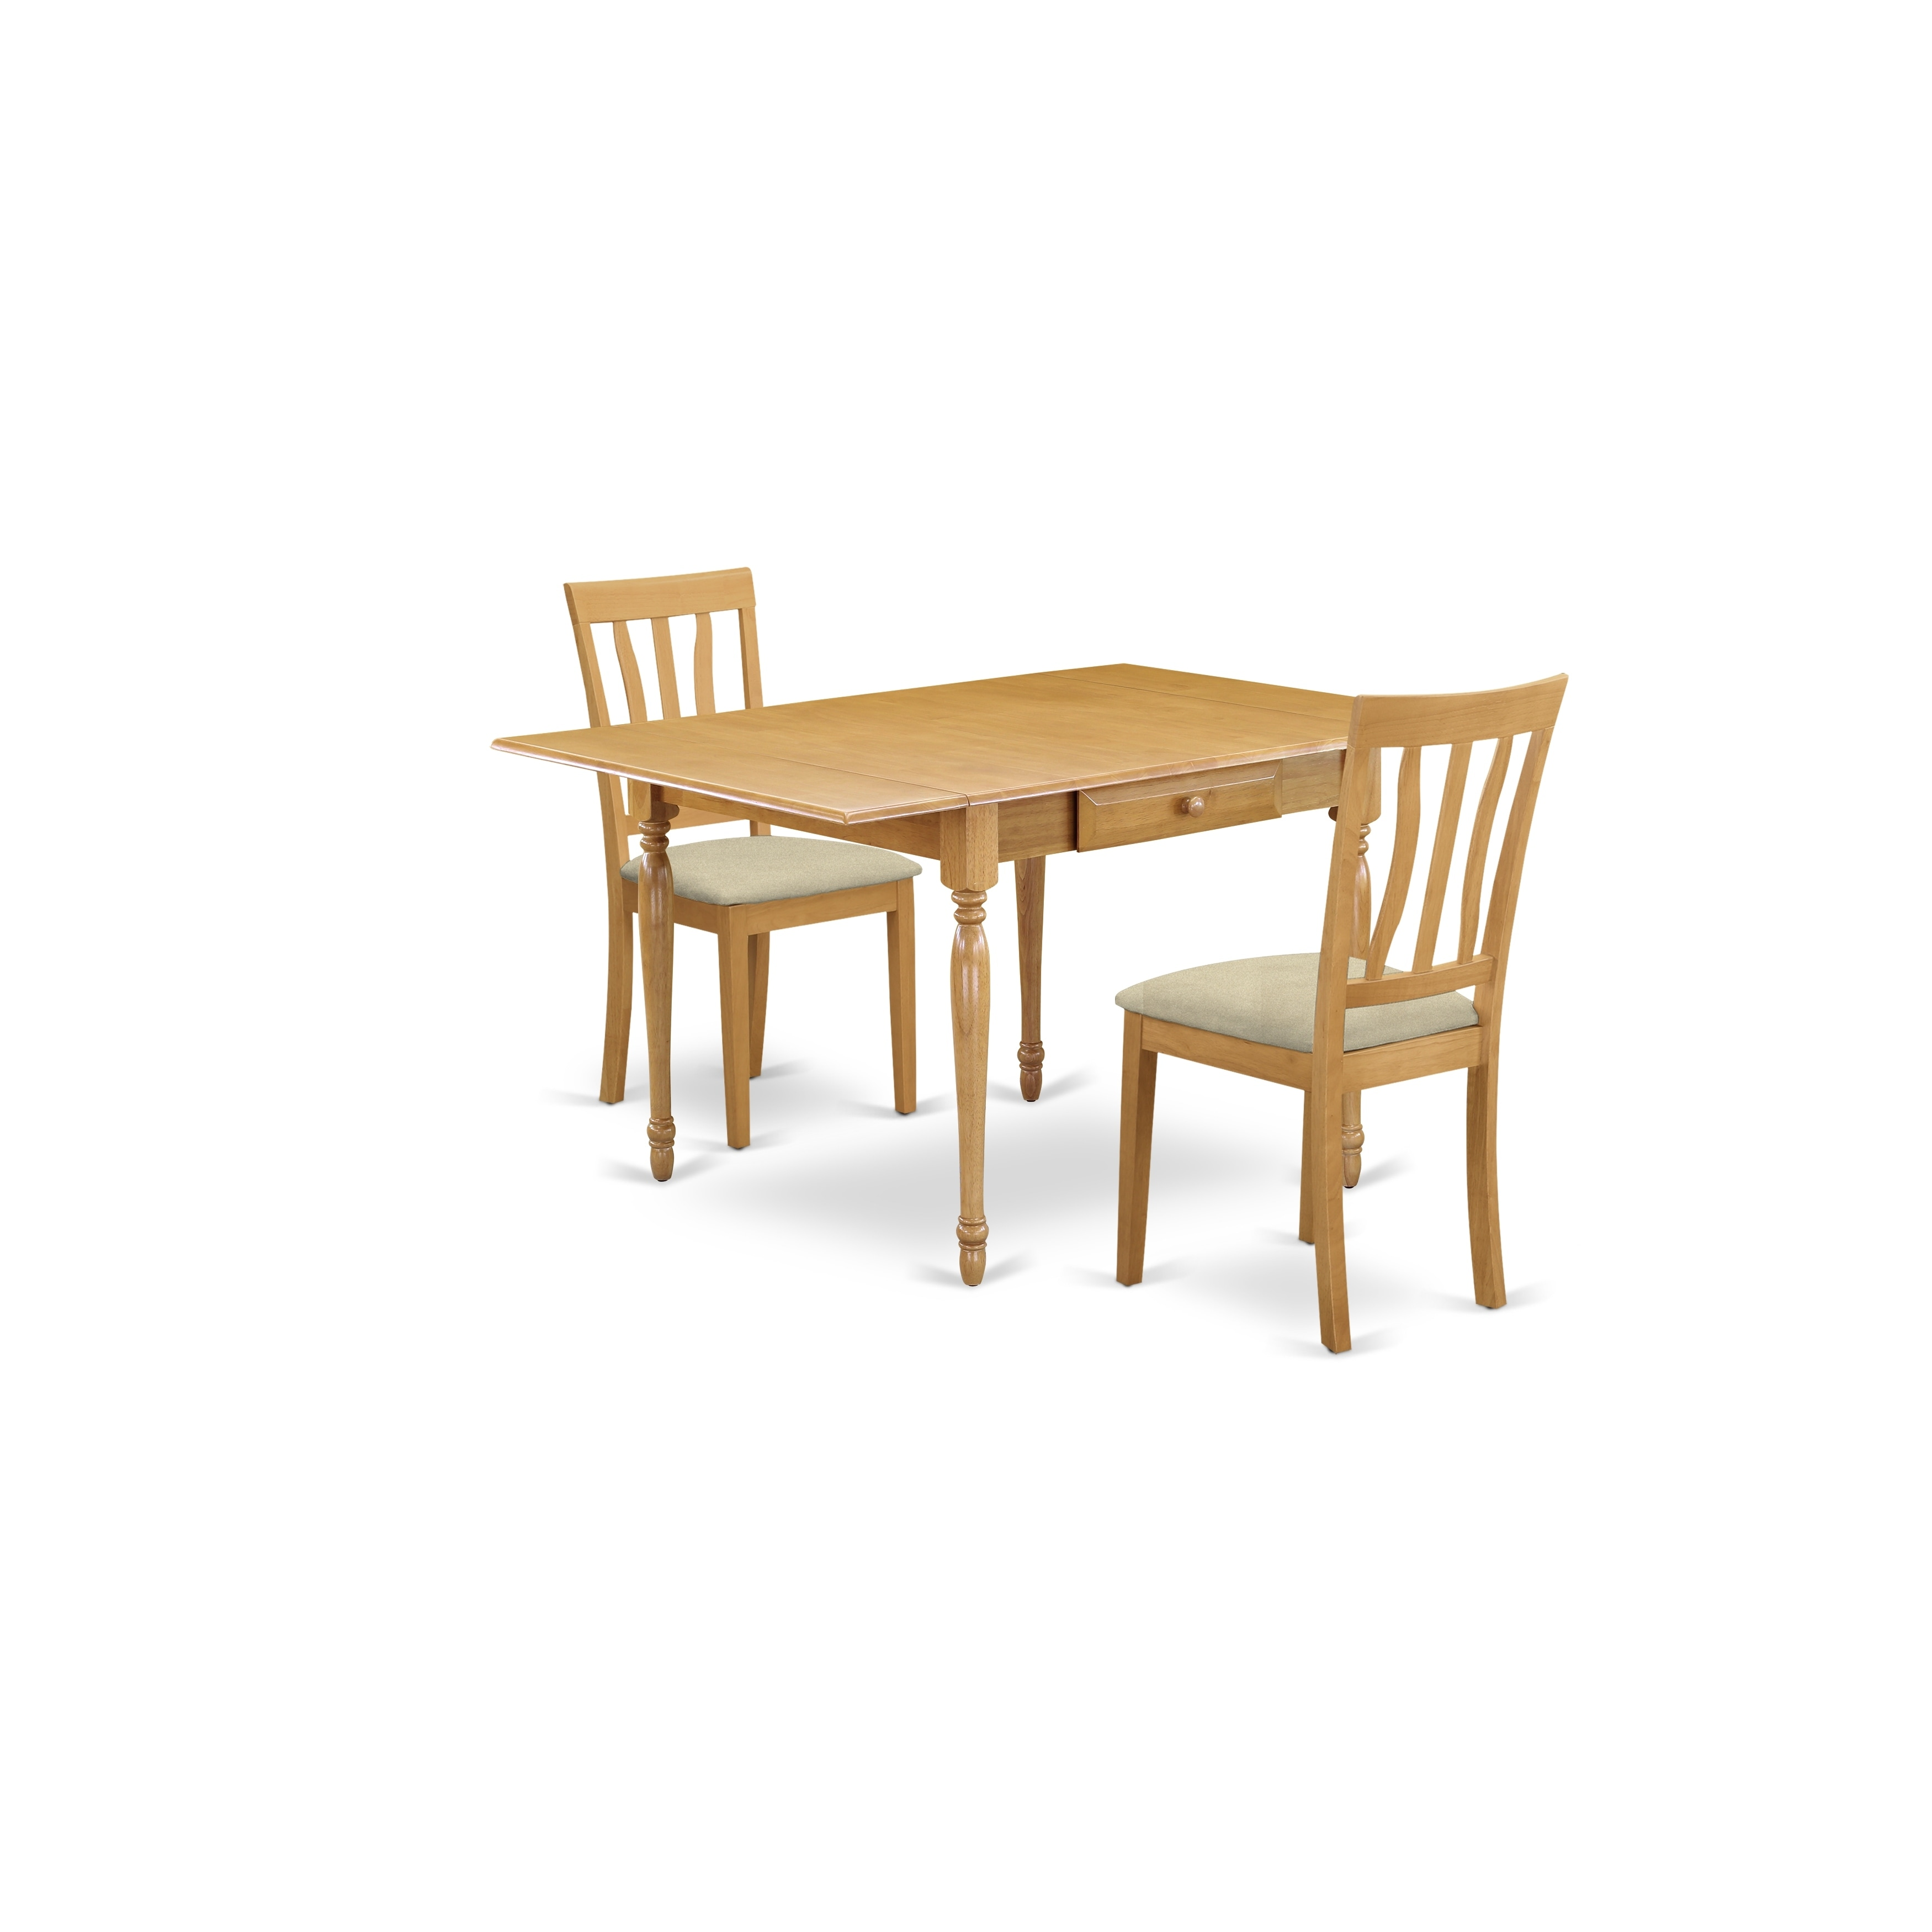 SPARE REPAIR Dining Table and 4 Chairs Set 80CM Round Wood Table Linen Fabric